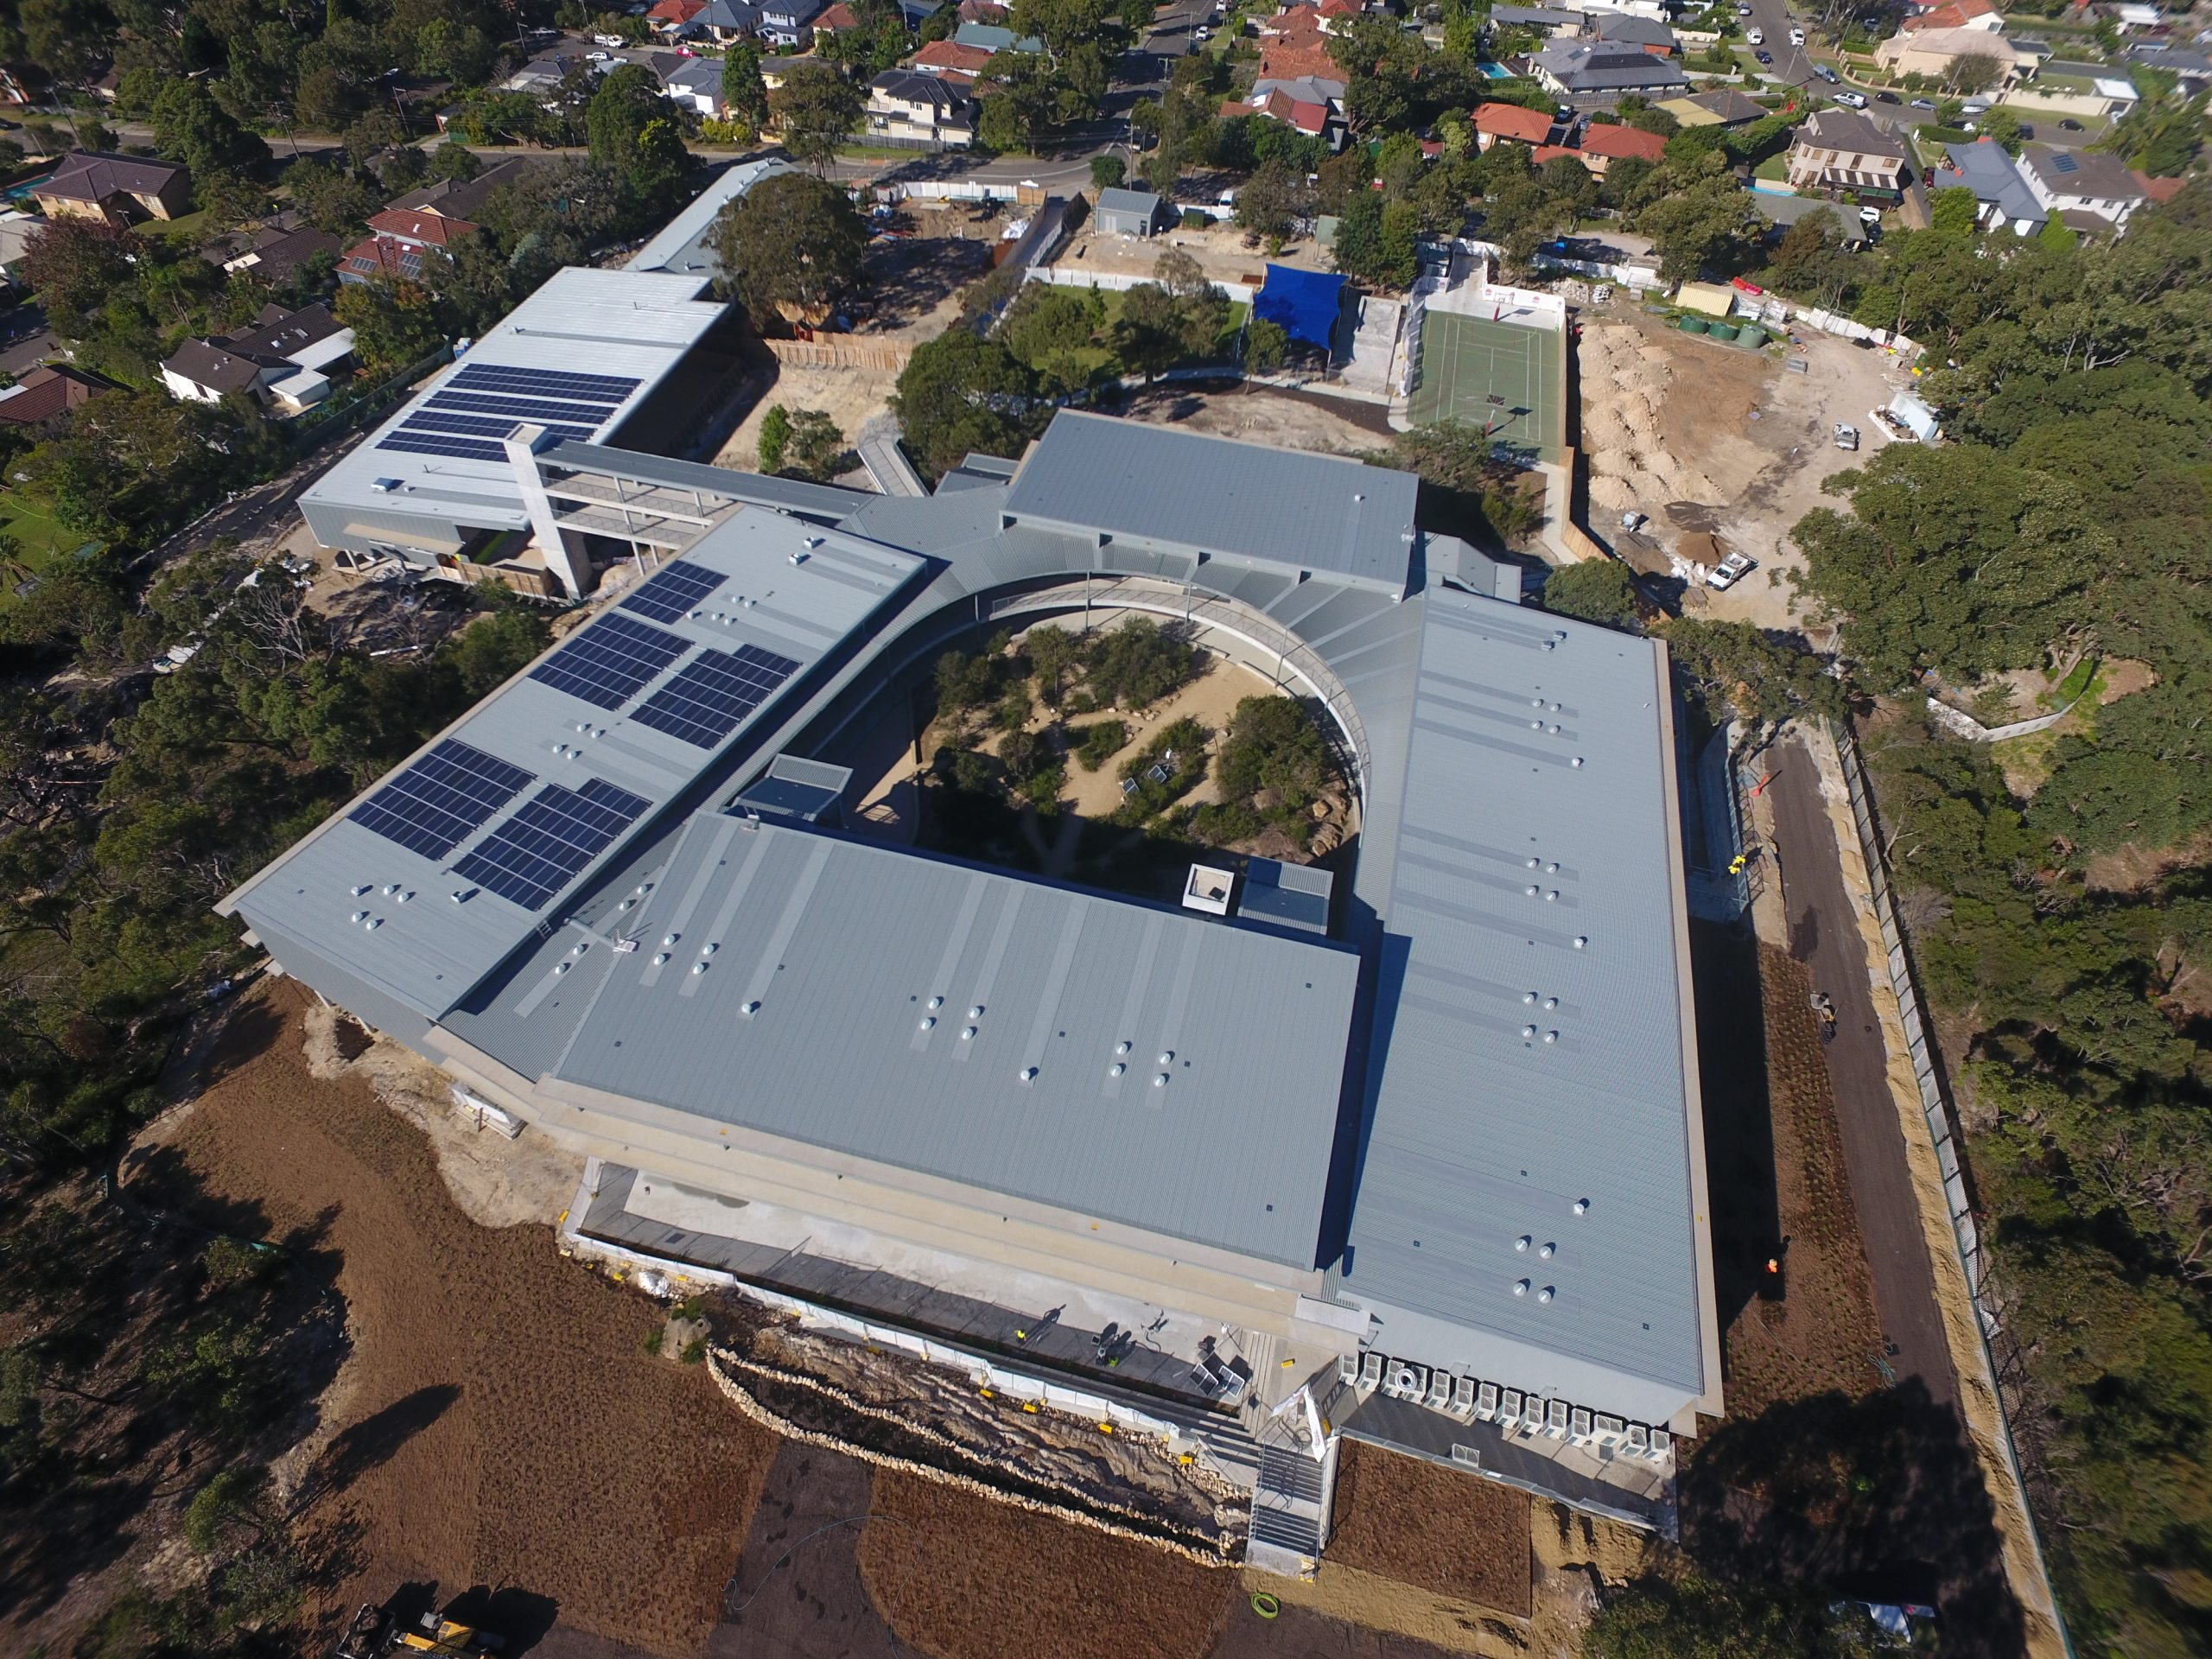 Manly Vale Public School Roofing